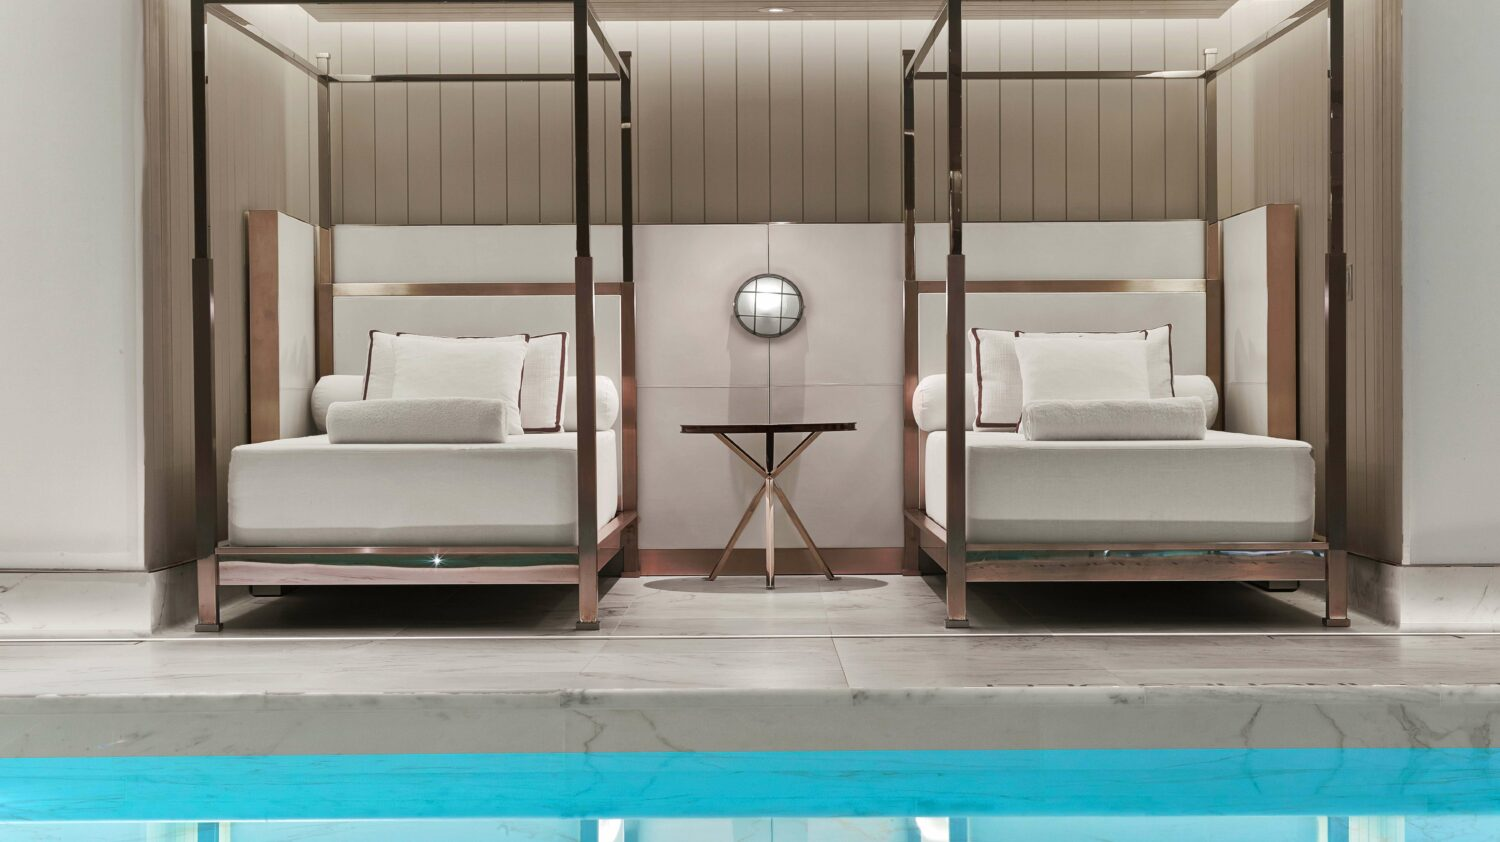 daybeds-baccarat hotel nyc